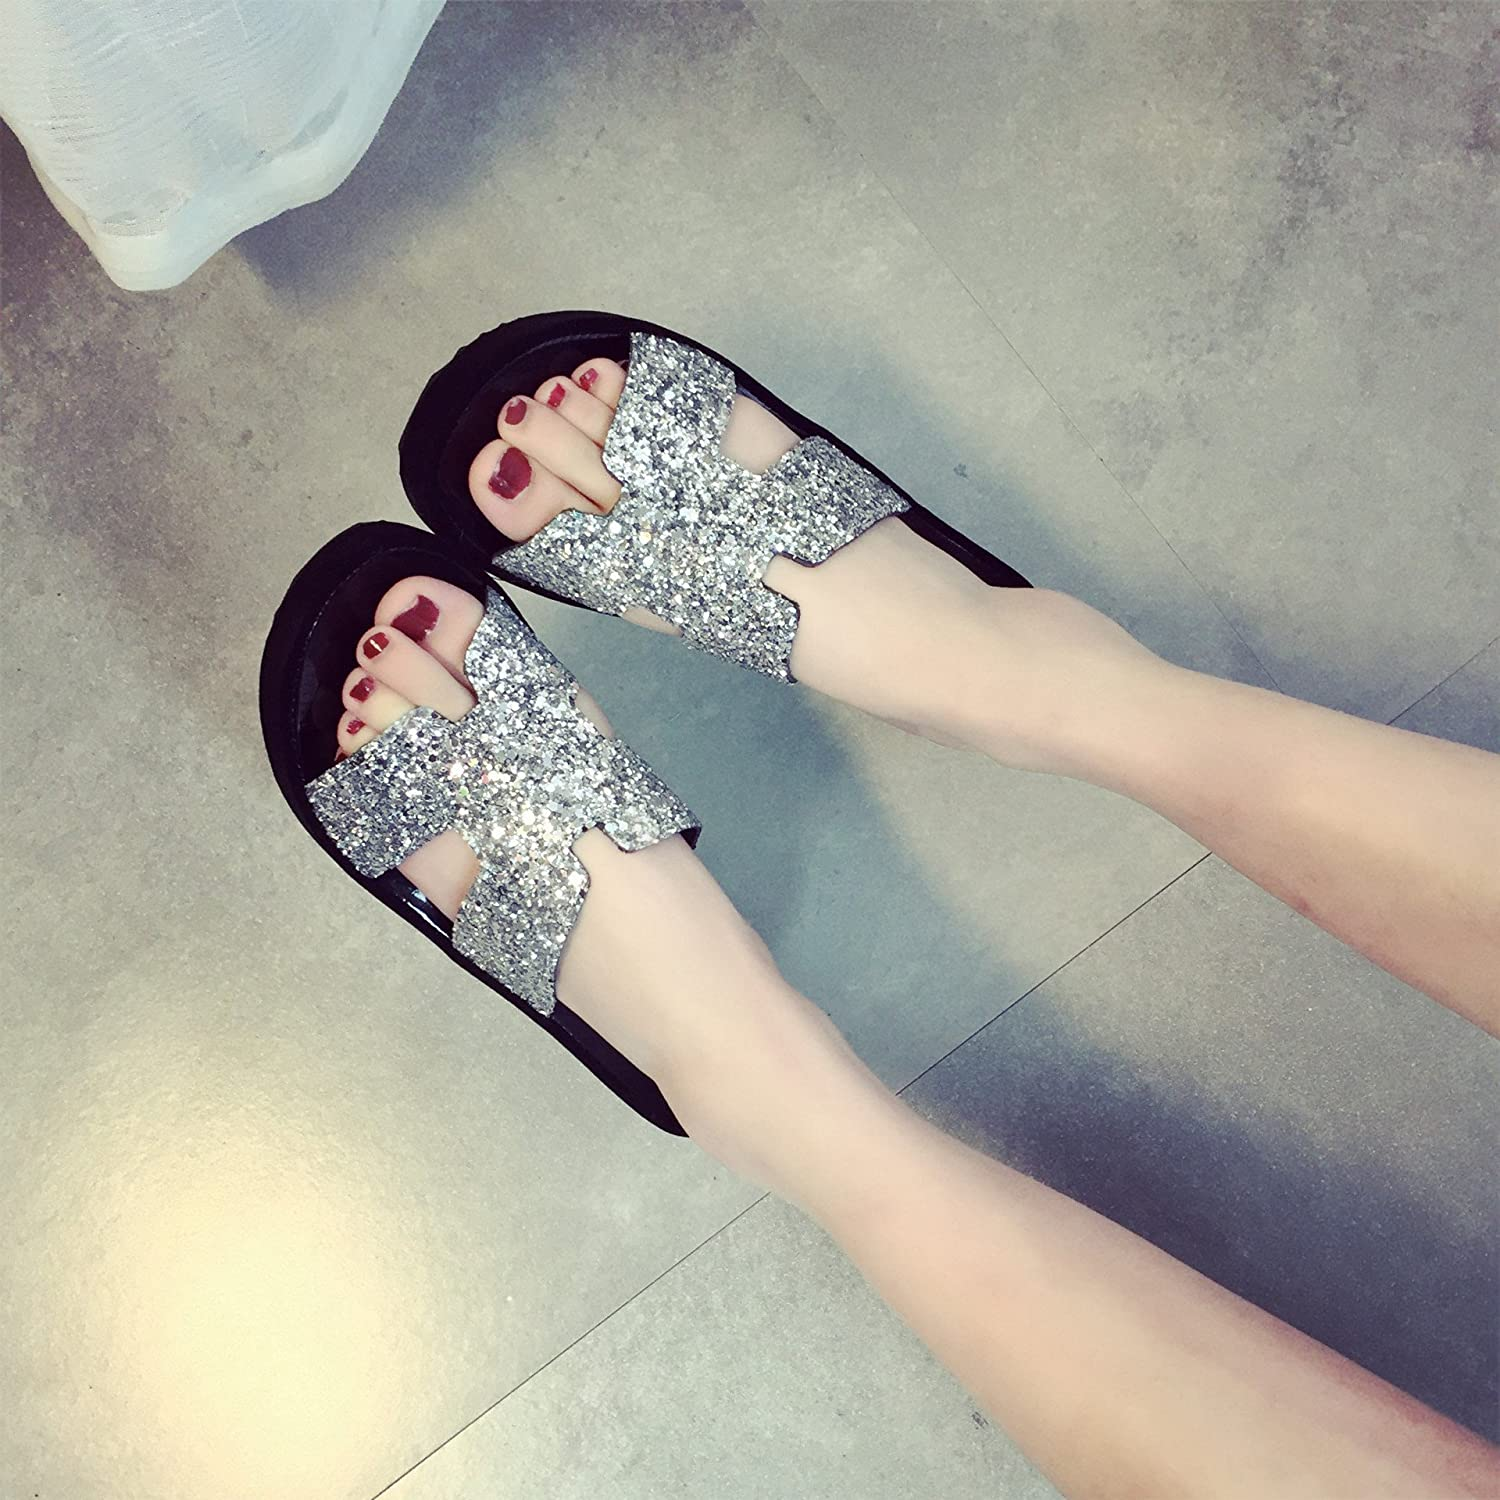 WYMBS Women's Sandals Spring Summer Fall PU Dress Casual Party & Evening Low Heel Rhinestone slippers ,silver,36